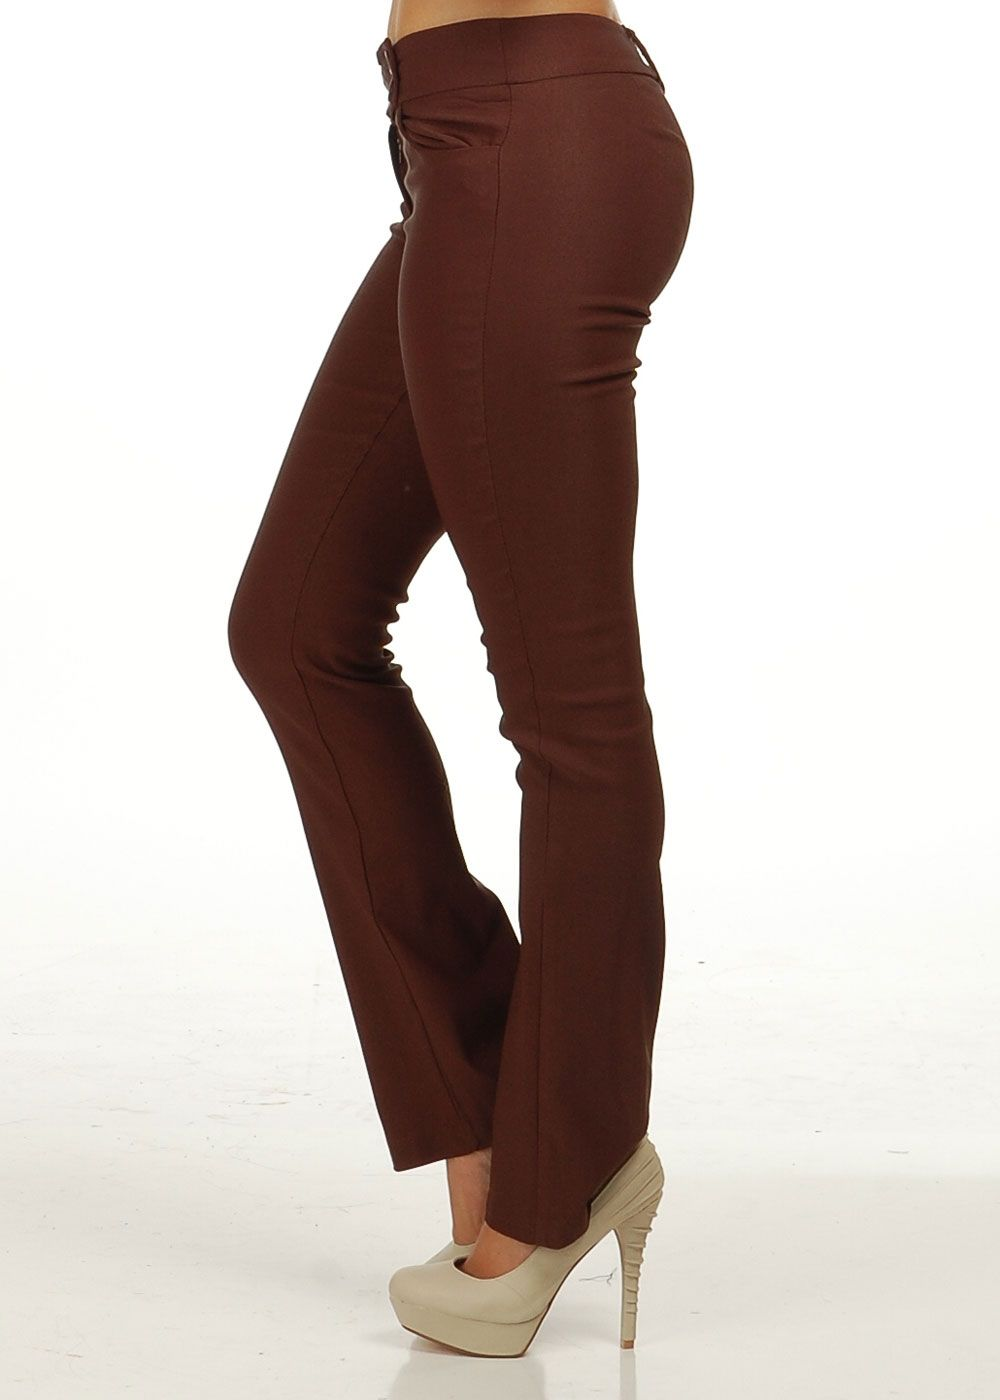 Brown Womens Pants